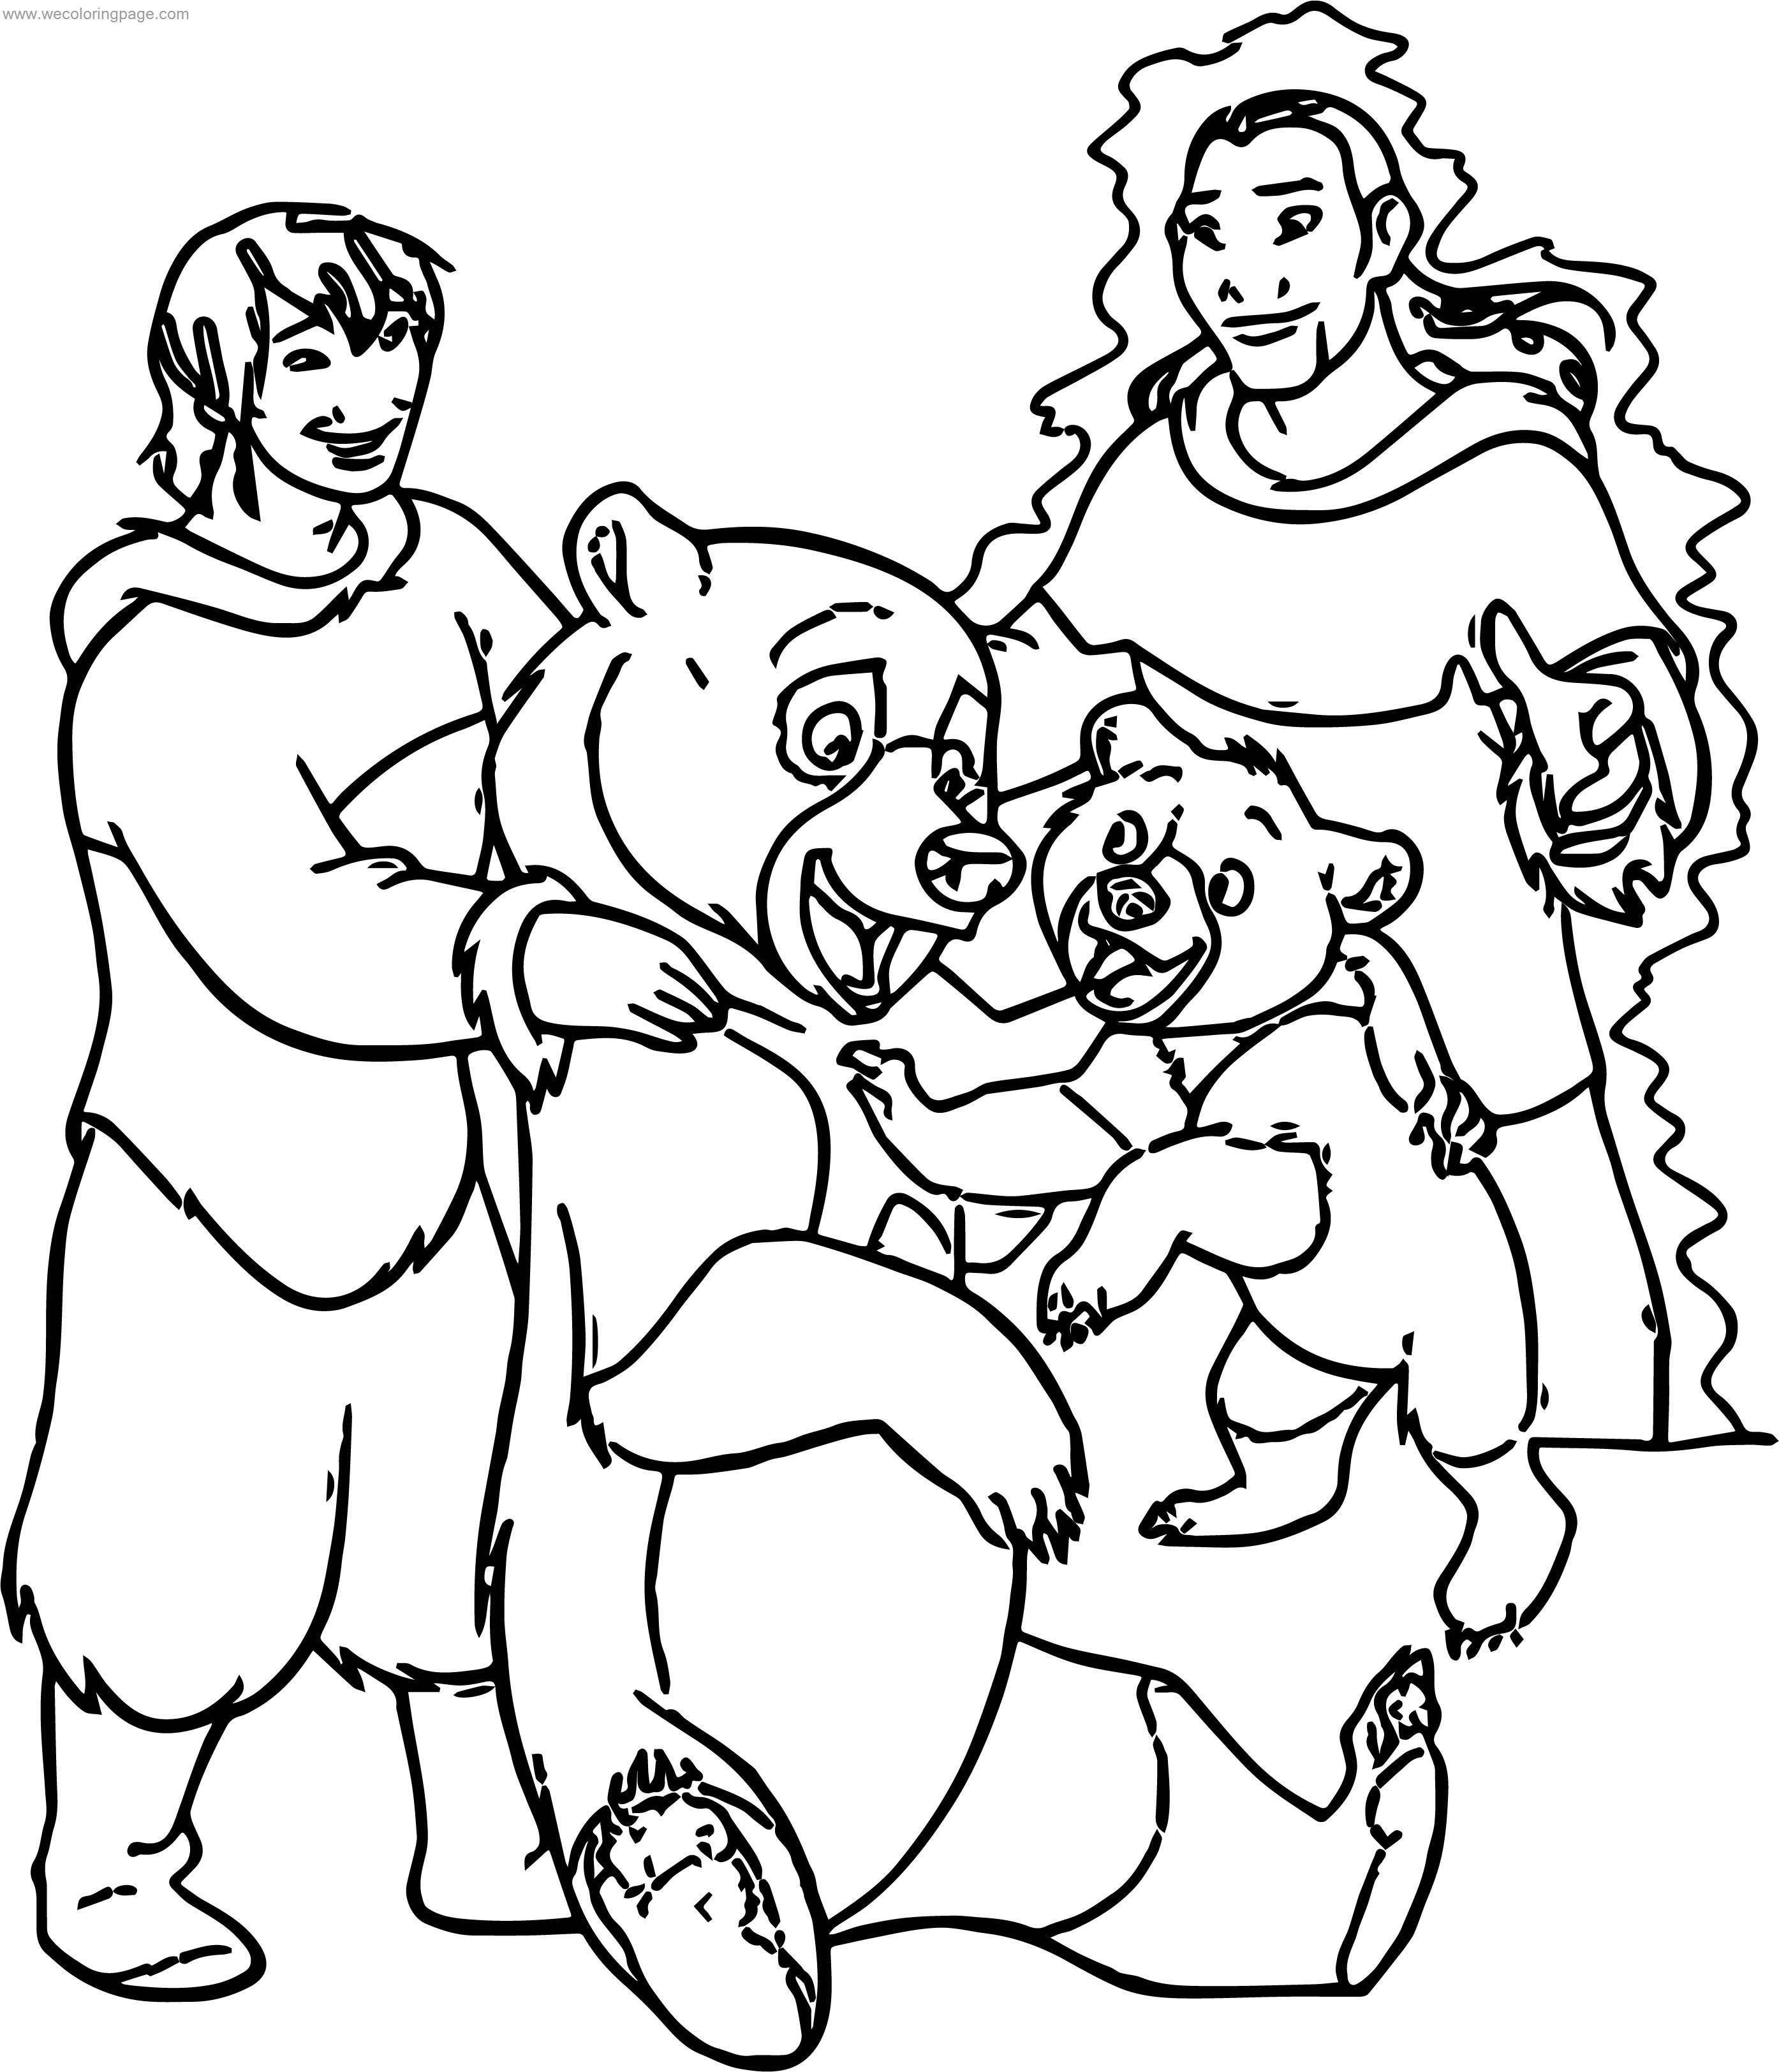 Disney Brother Bear Family Coloring Pages